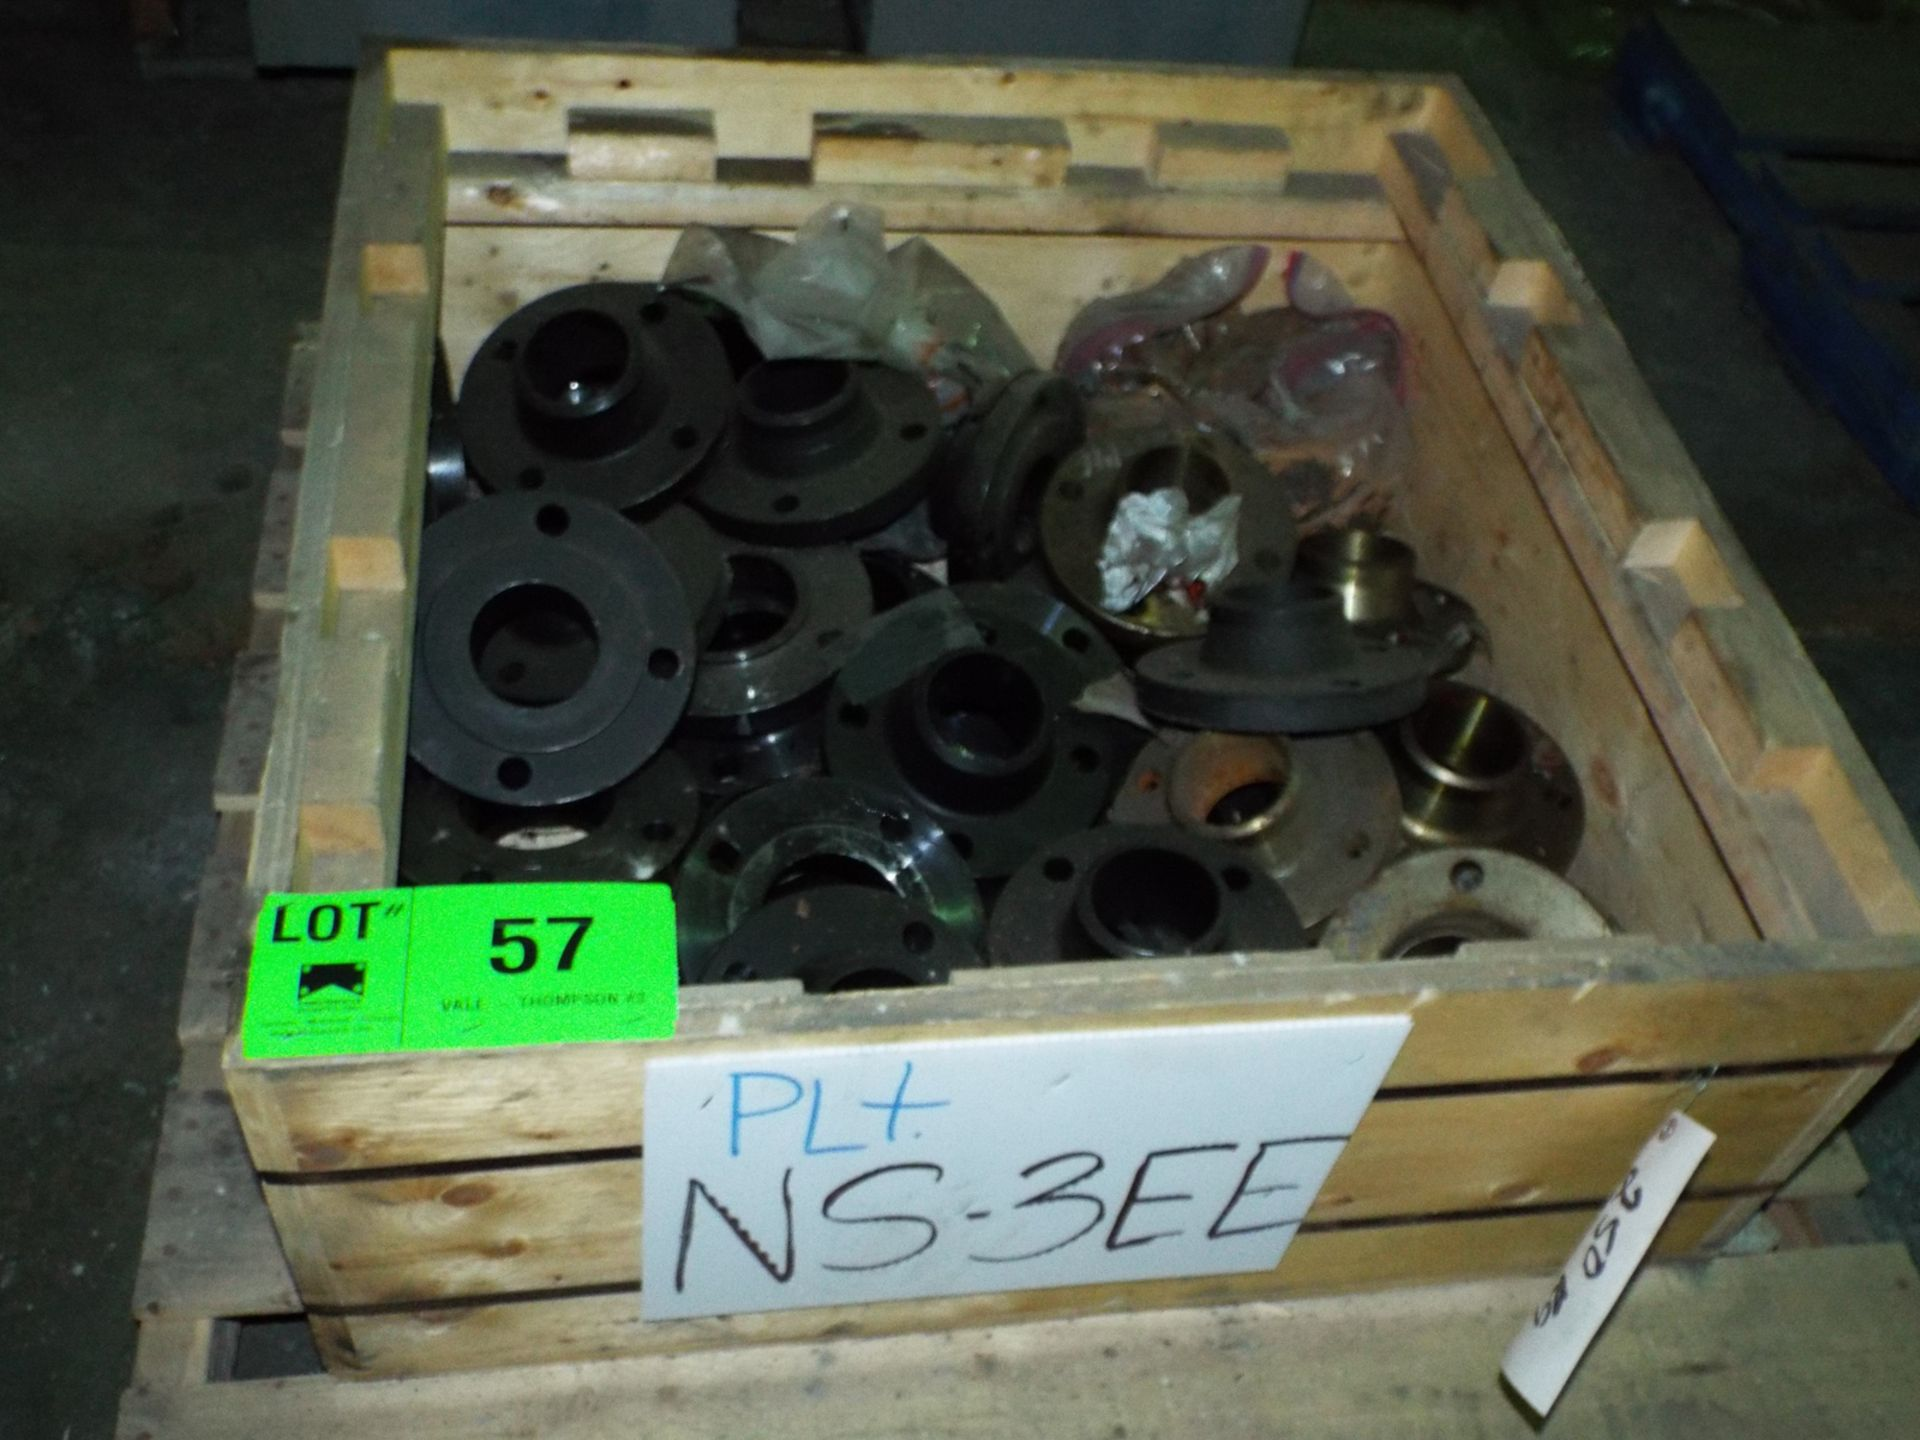 Lot 57 - LOT/ CONTENTS OF CRATE - CARBON STEEL PIPE FITTINGS ASSORTED SIZES (NS-3EE)